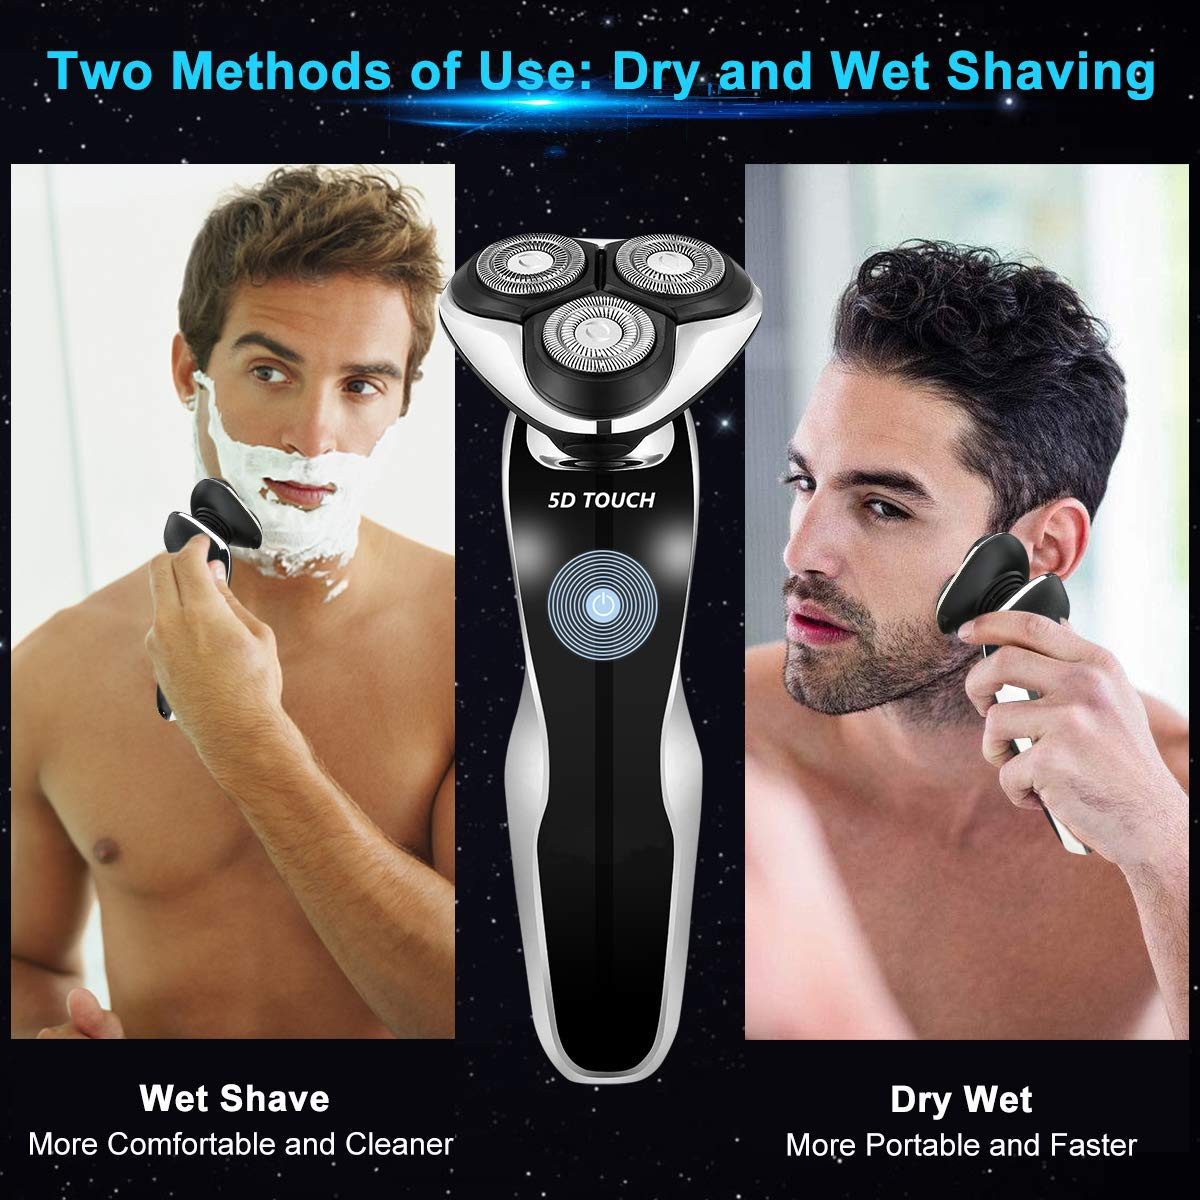 4 In 1 Men's Electric Shaver Set, Dry & Wet Waterproof Mens Rotary Razor Beard Trimmer